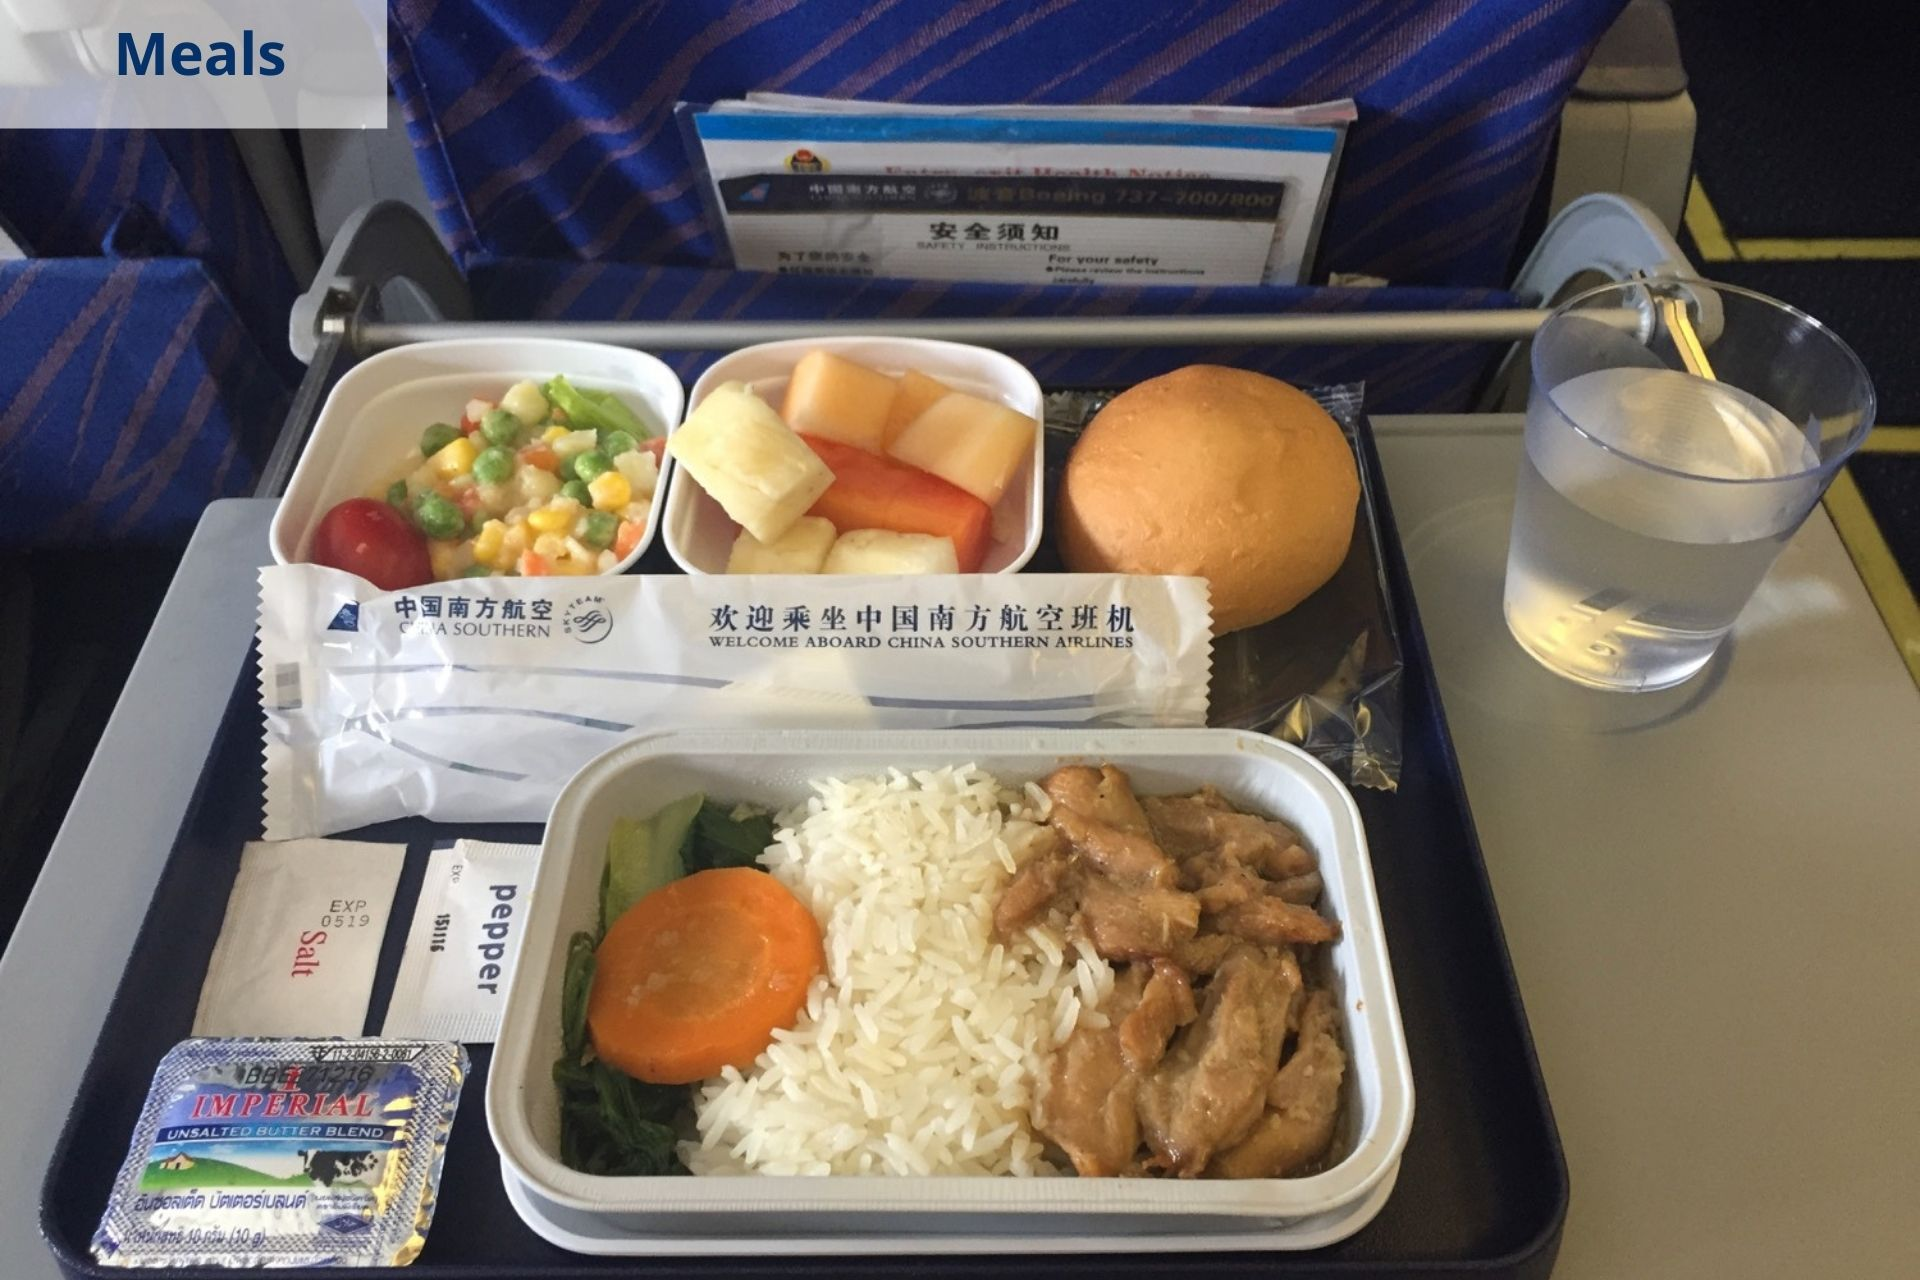 China Southern Airlines meals